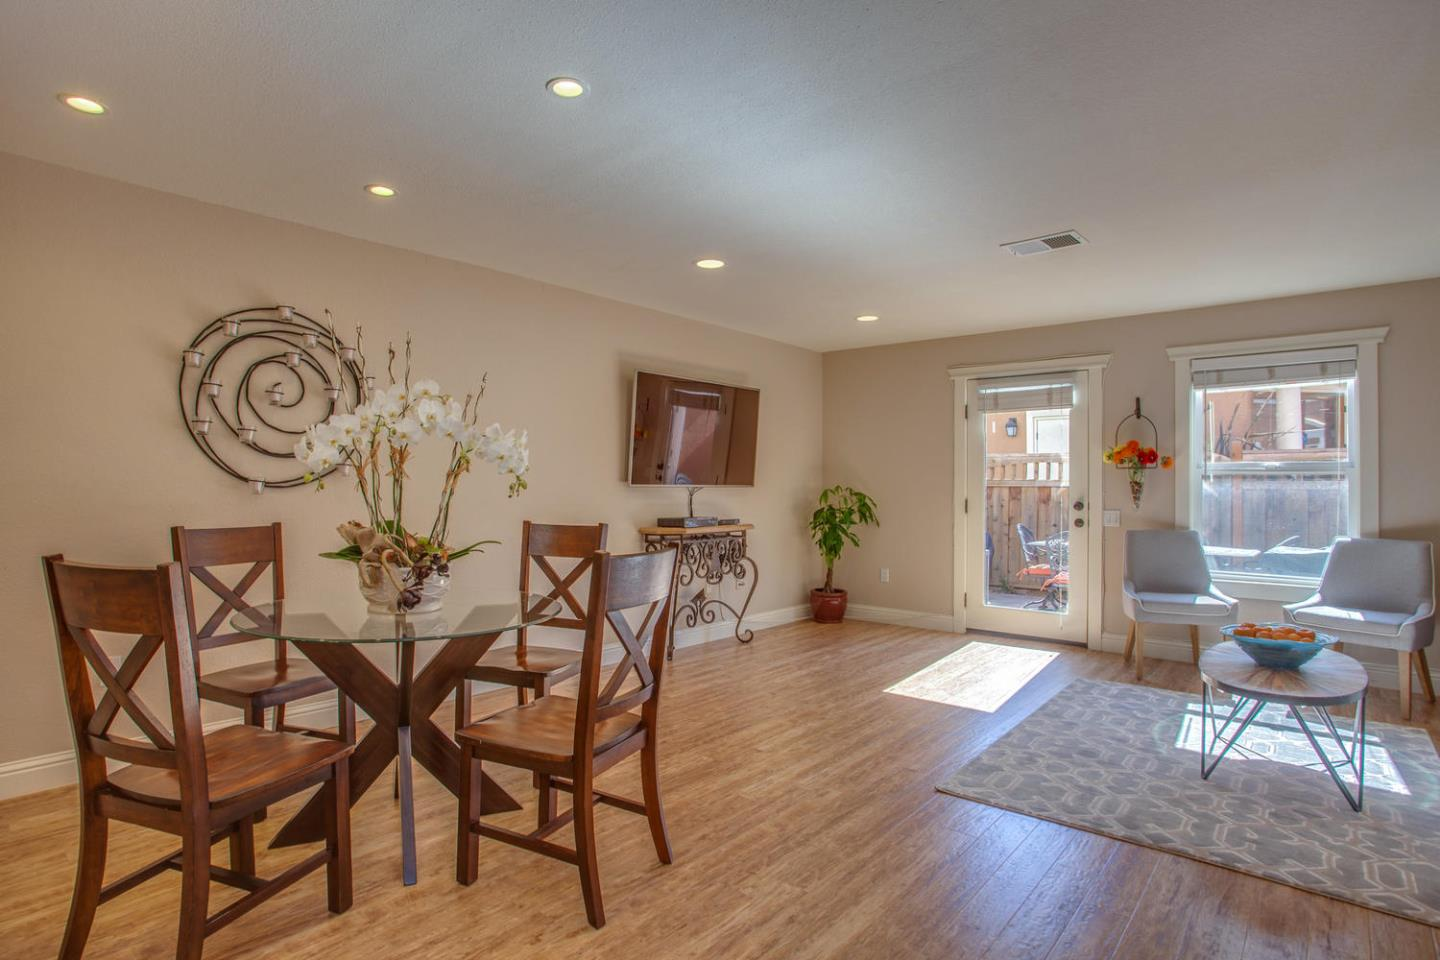 Additional photo for property listing at 865 Carlisle Way  Sunnyvale, カリフォルニア 94087 アメリカ合衆国